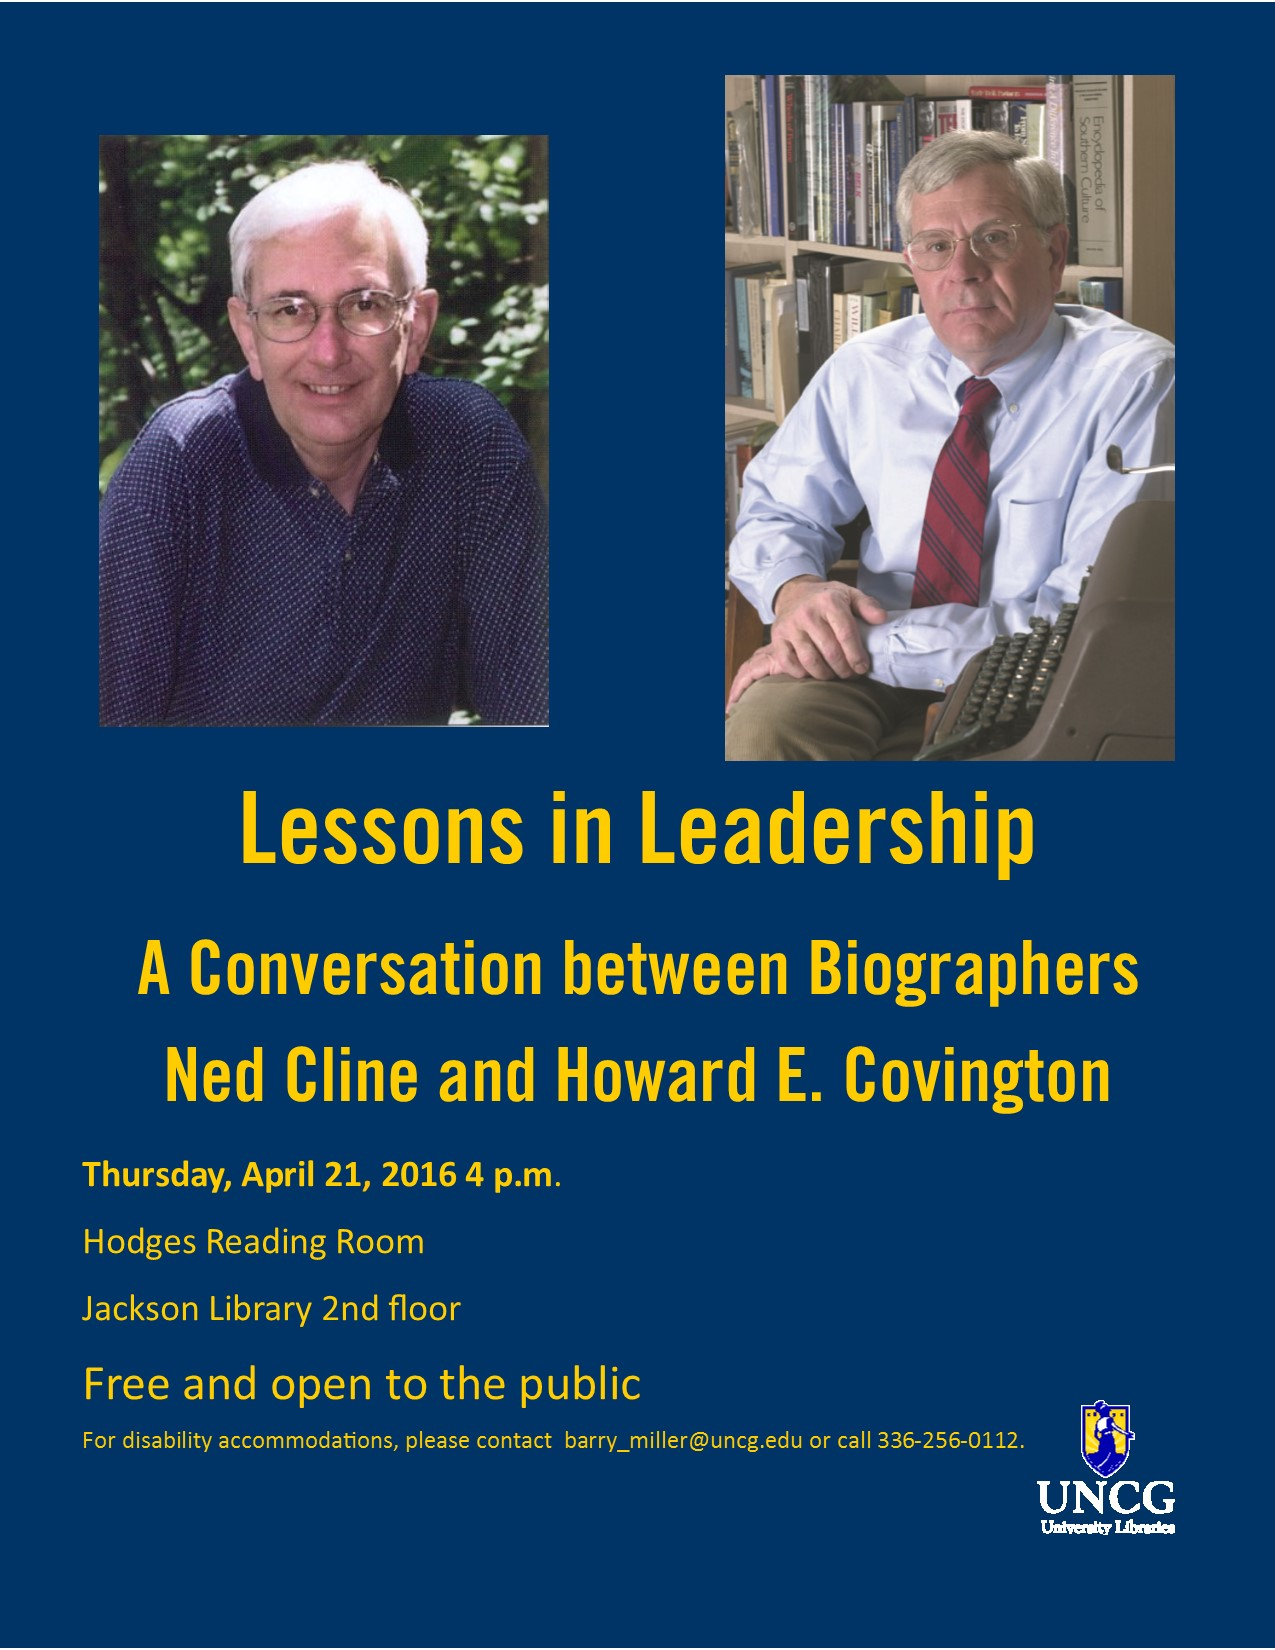 Flyer for Cline & Covington on leadership at Jackson Library, Thursday April 21, 4 p.m.